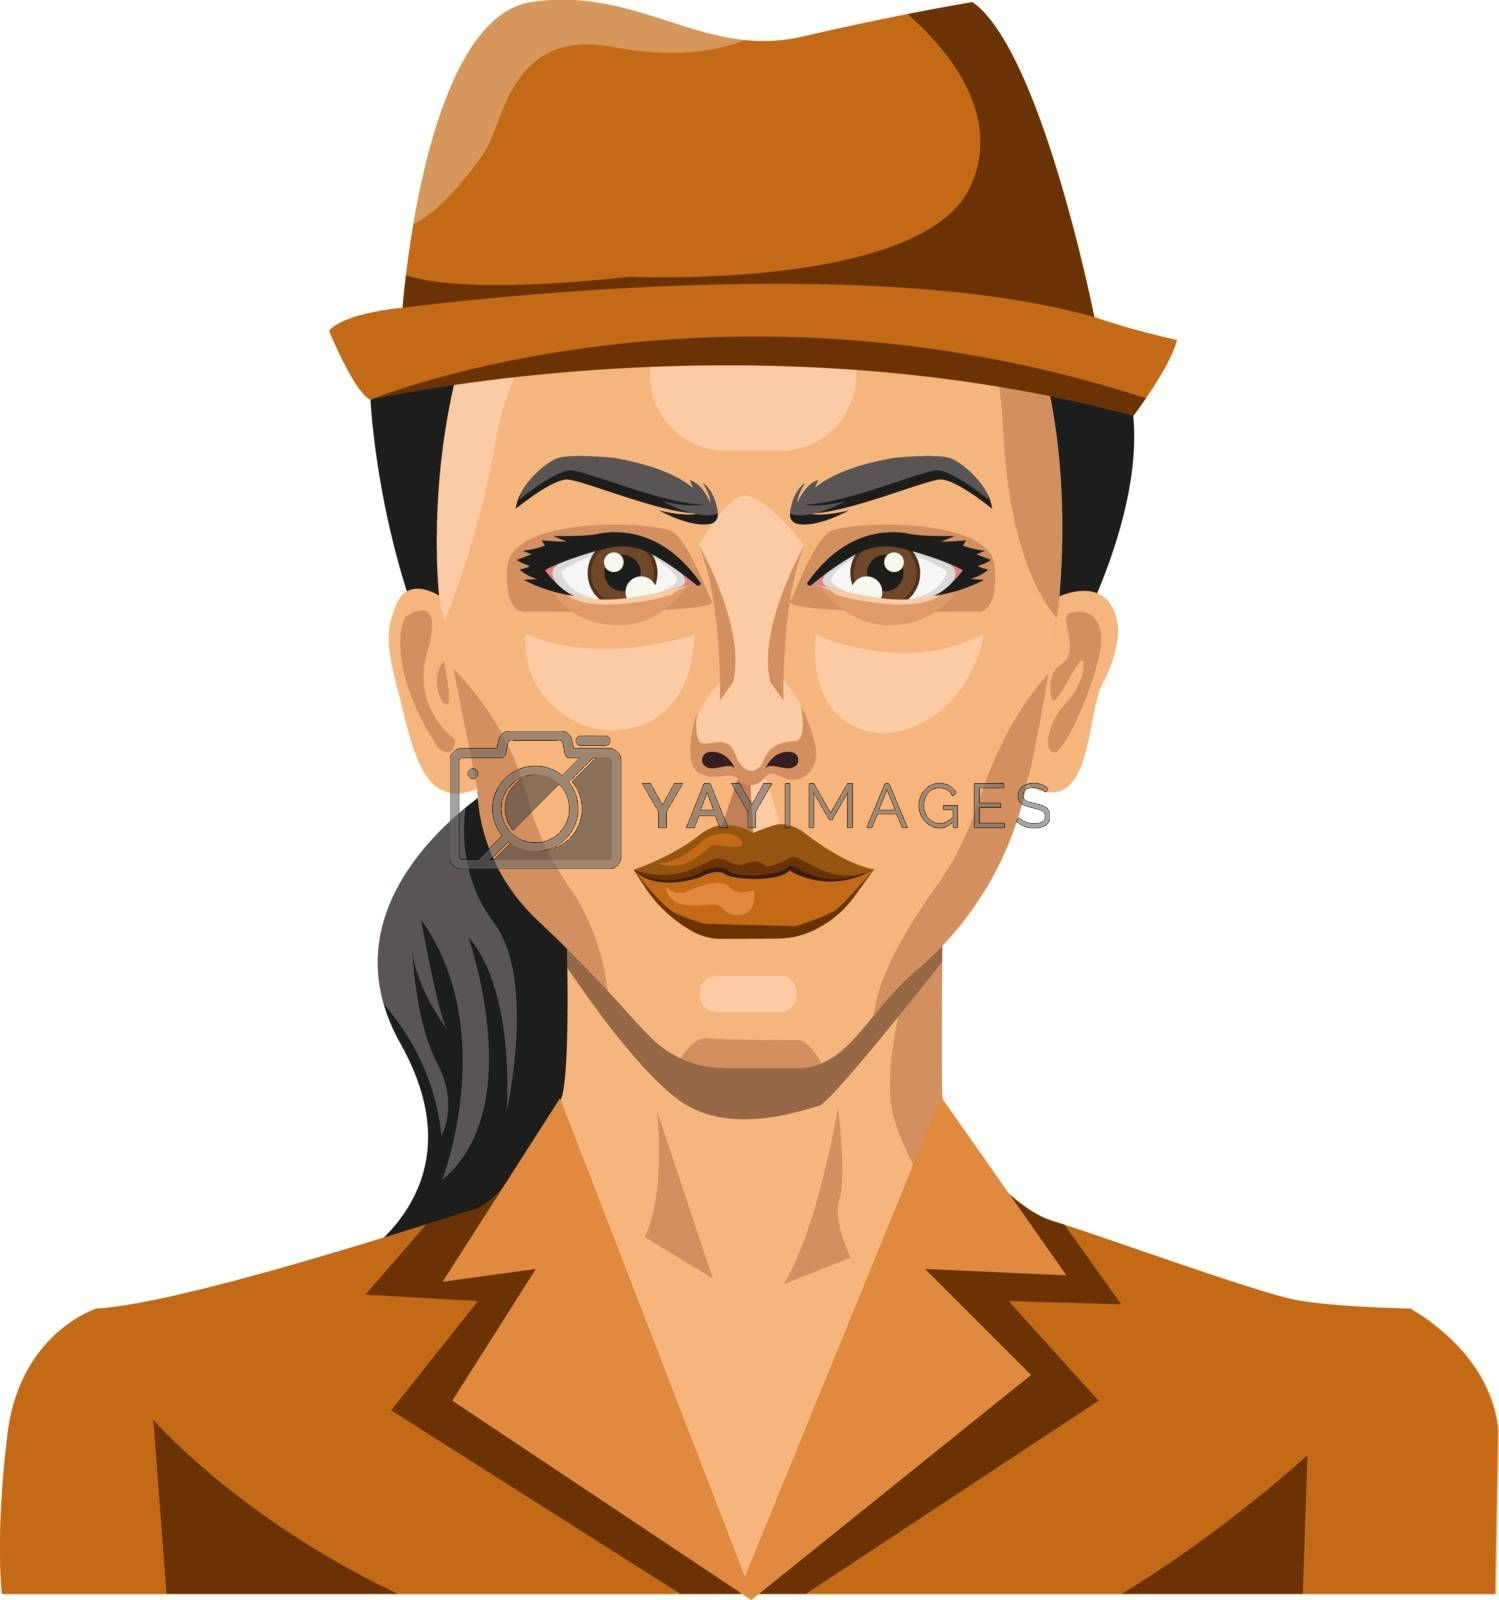 Royalty free image of Girl with brown hat and pony tail illustration vector on white b by Morphart